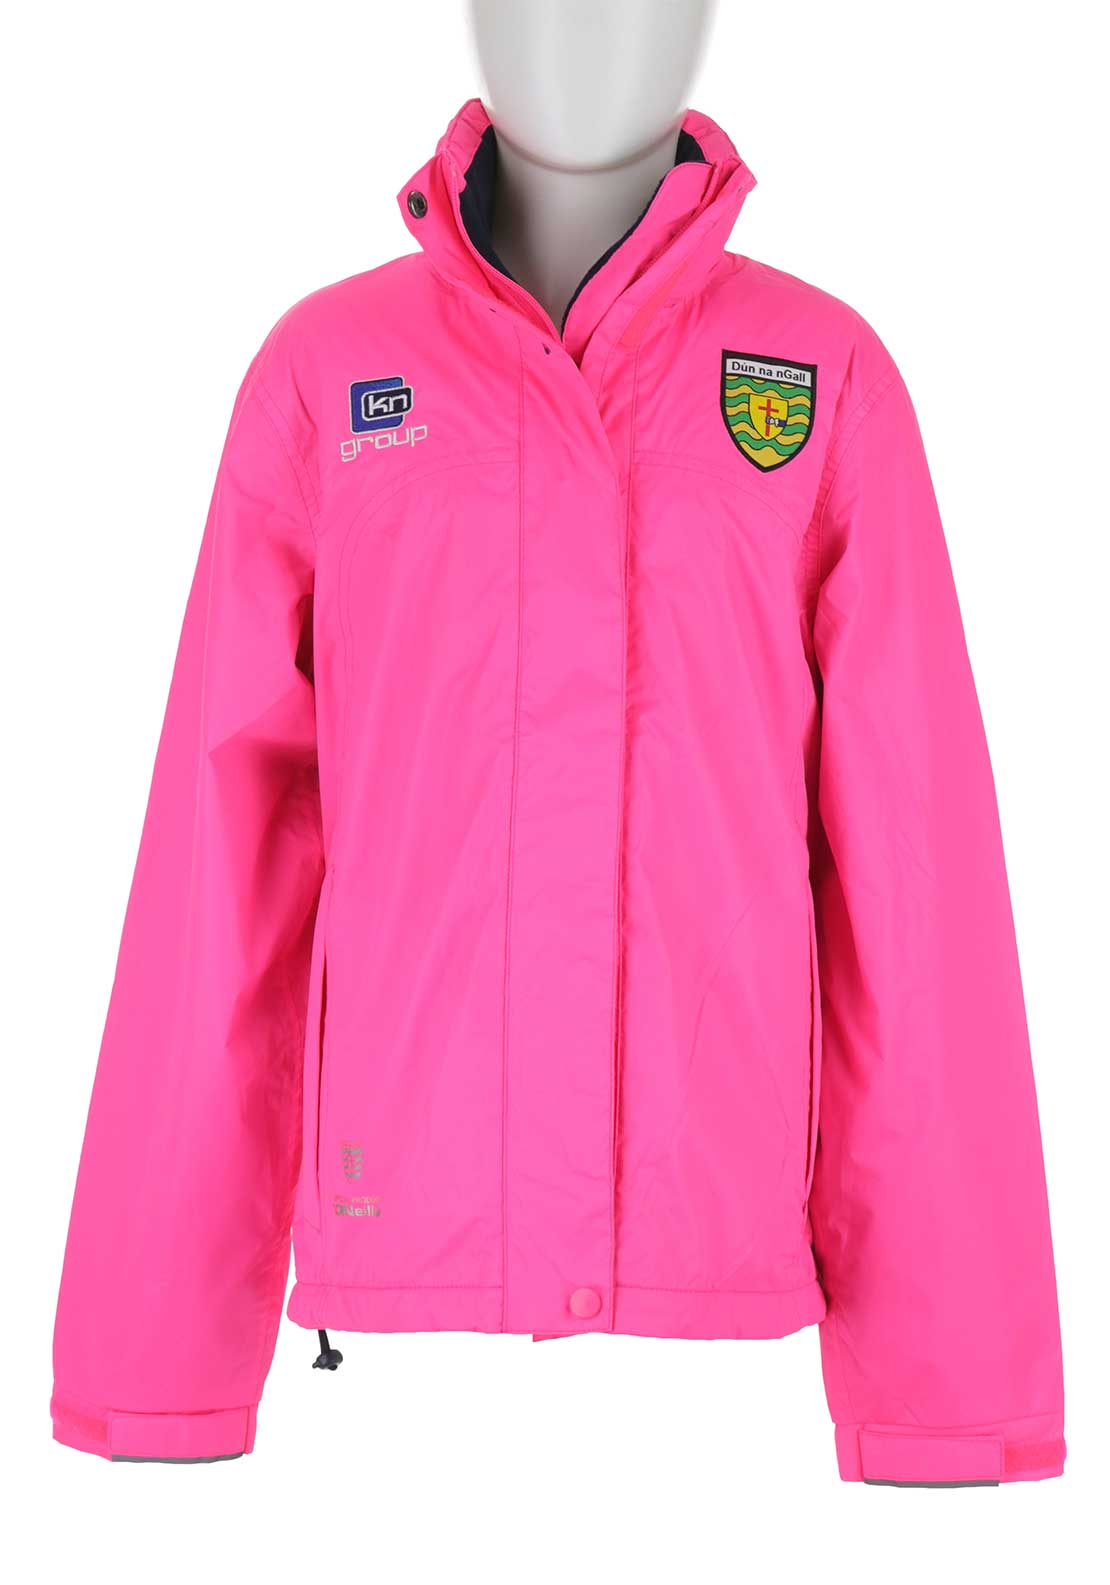 O'Neill's Donegal GAA Girls Conall Jacket, Pink